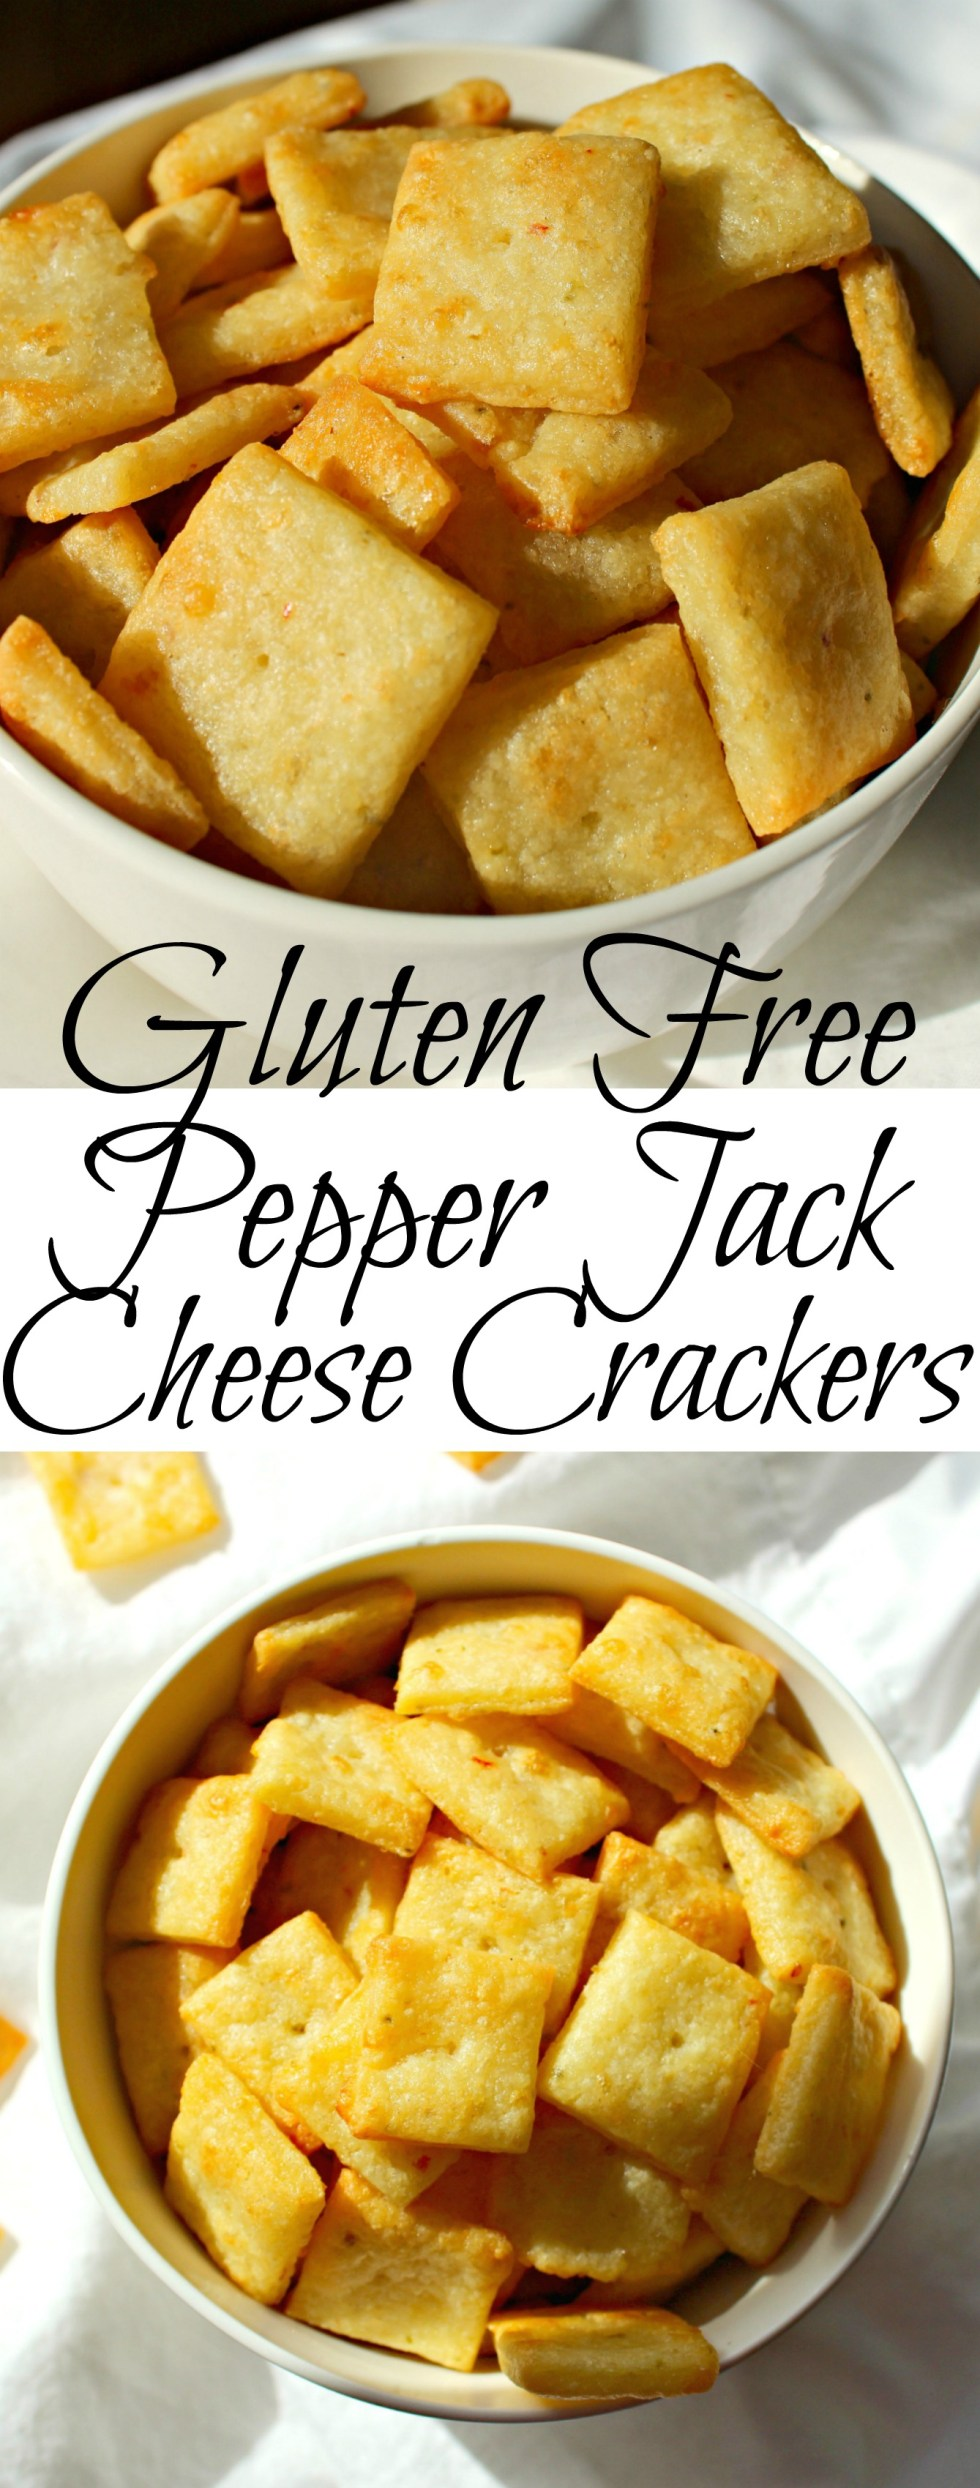 Gluten Free Pepper Jack Cheese Crackers Pin